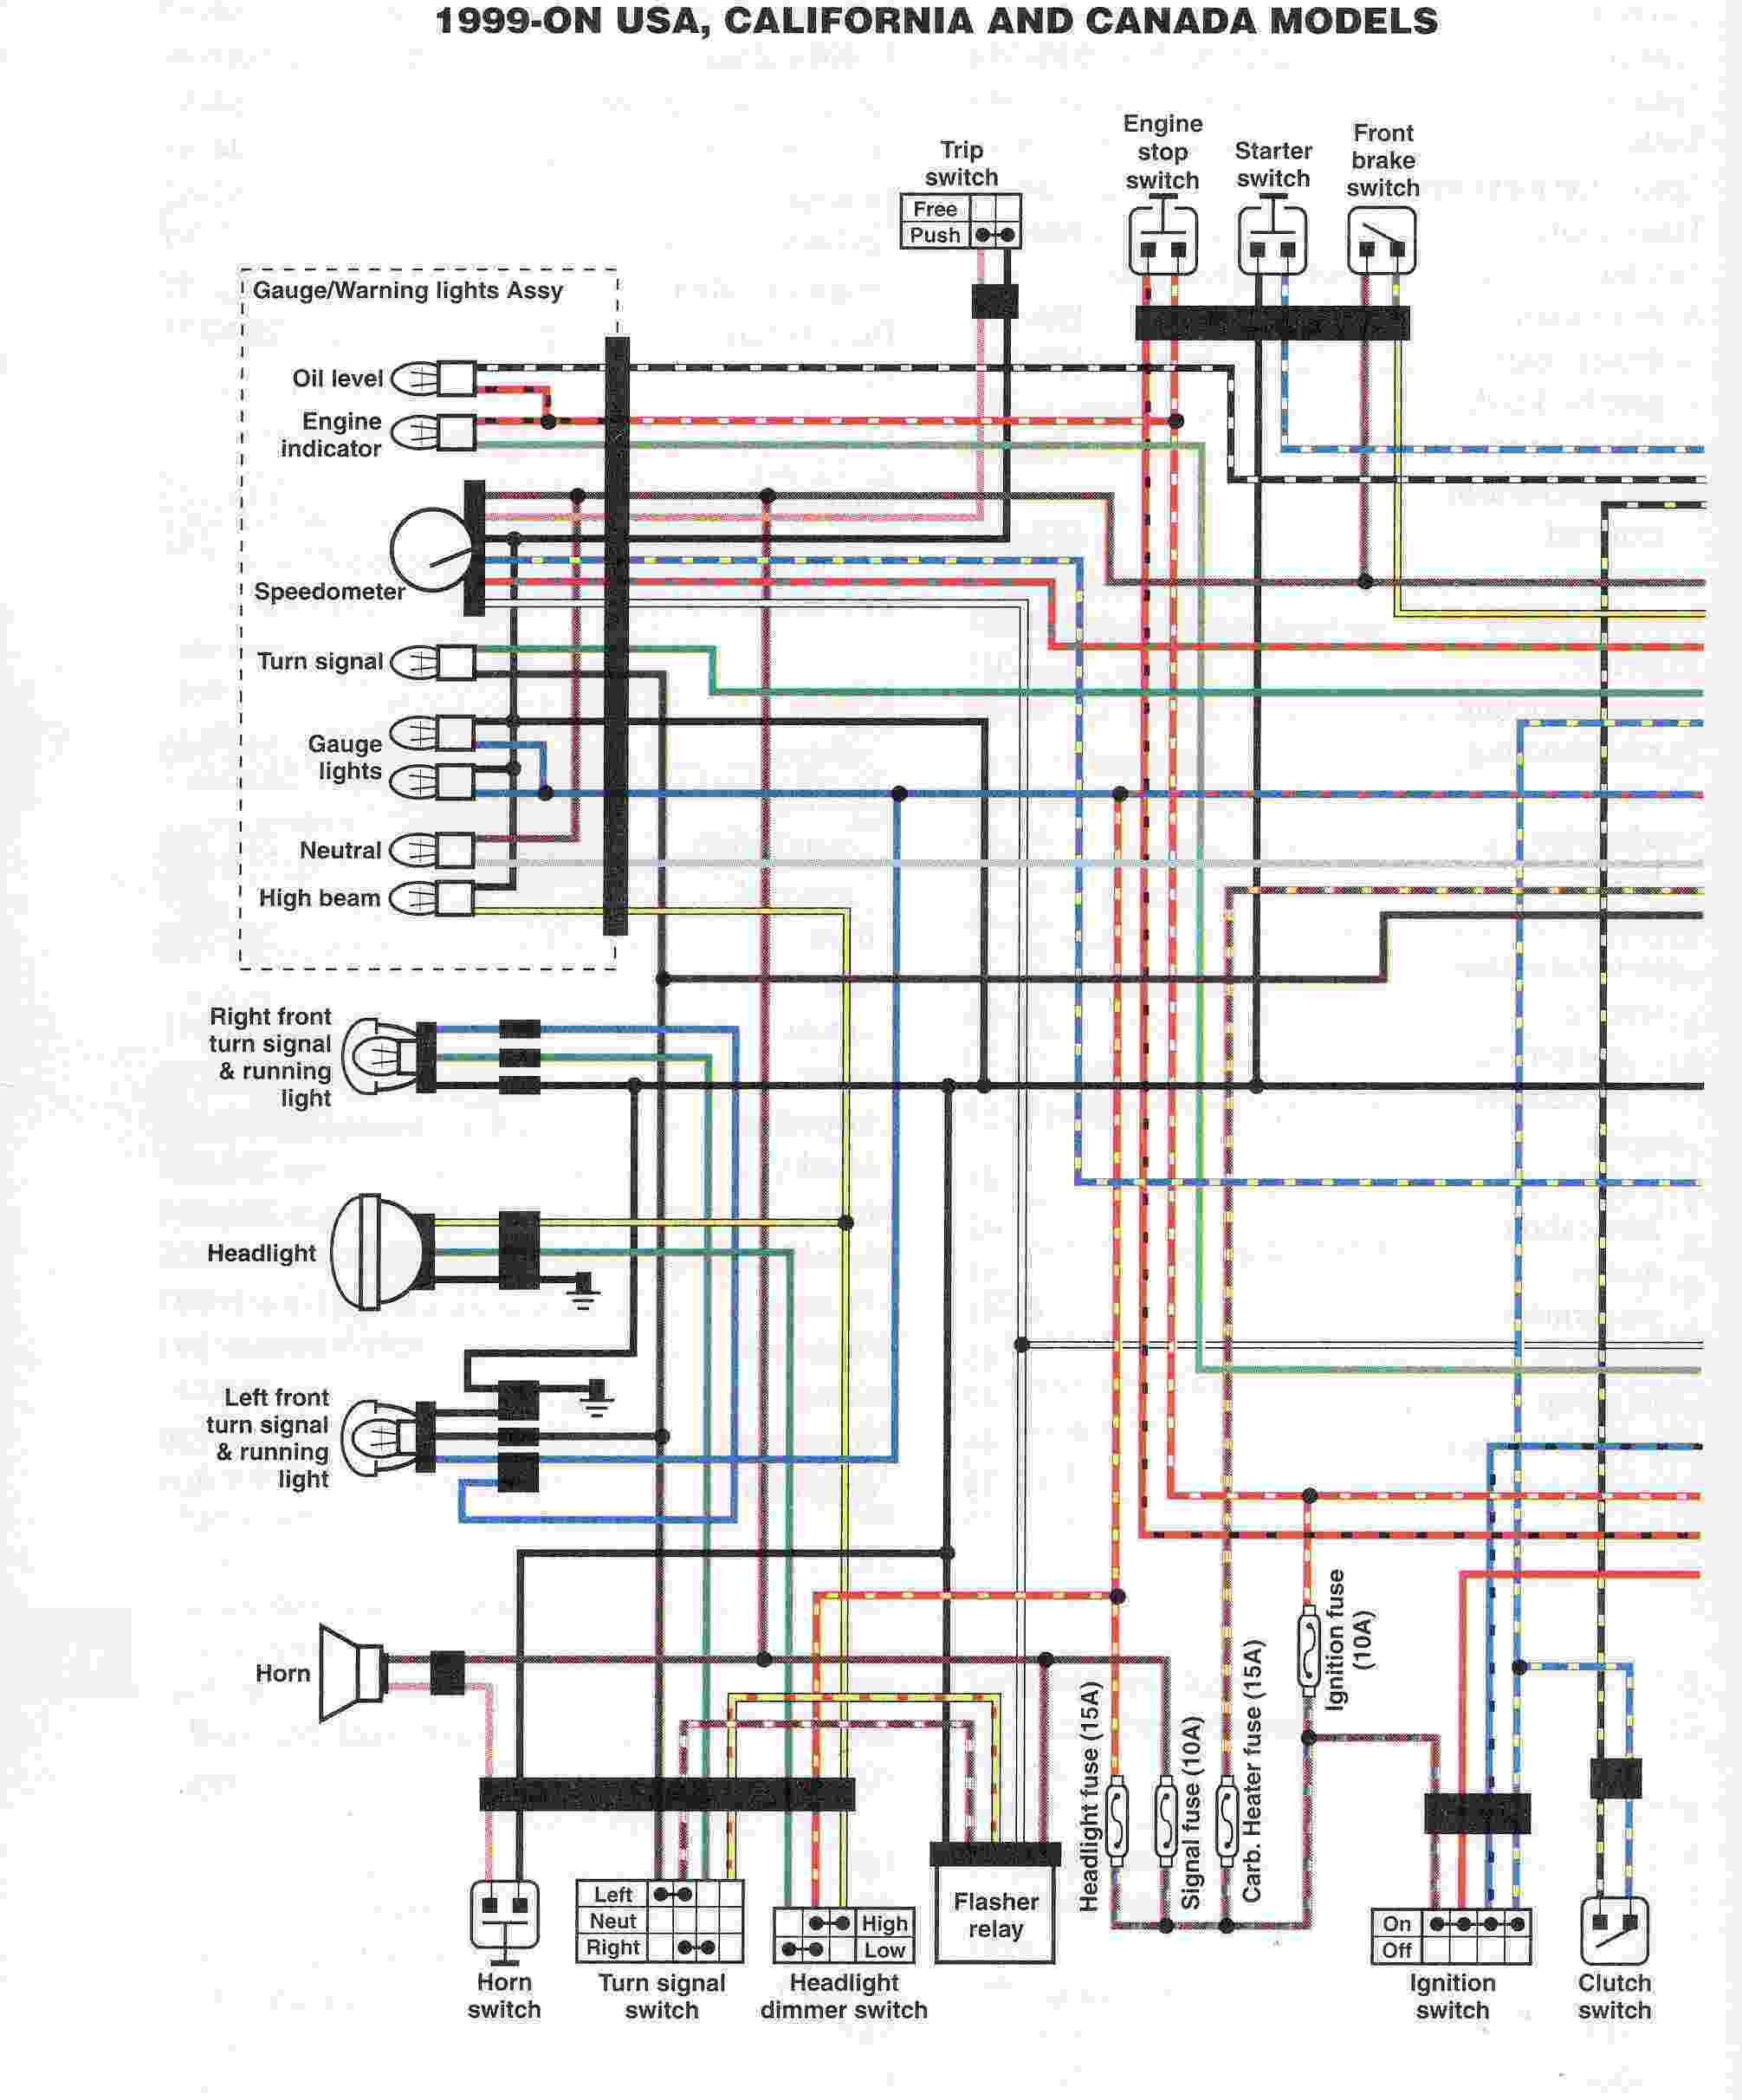 kama wiring diagram wiring diagram section  kama wiring diagram #10